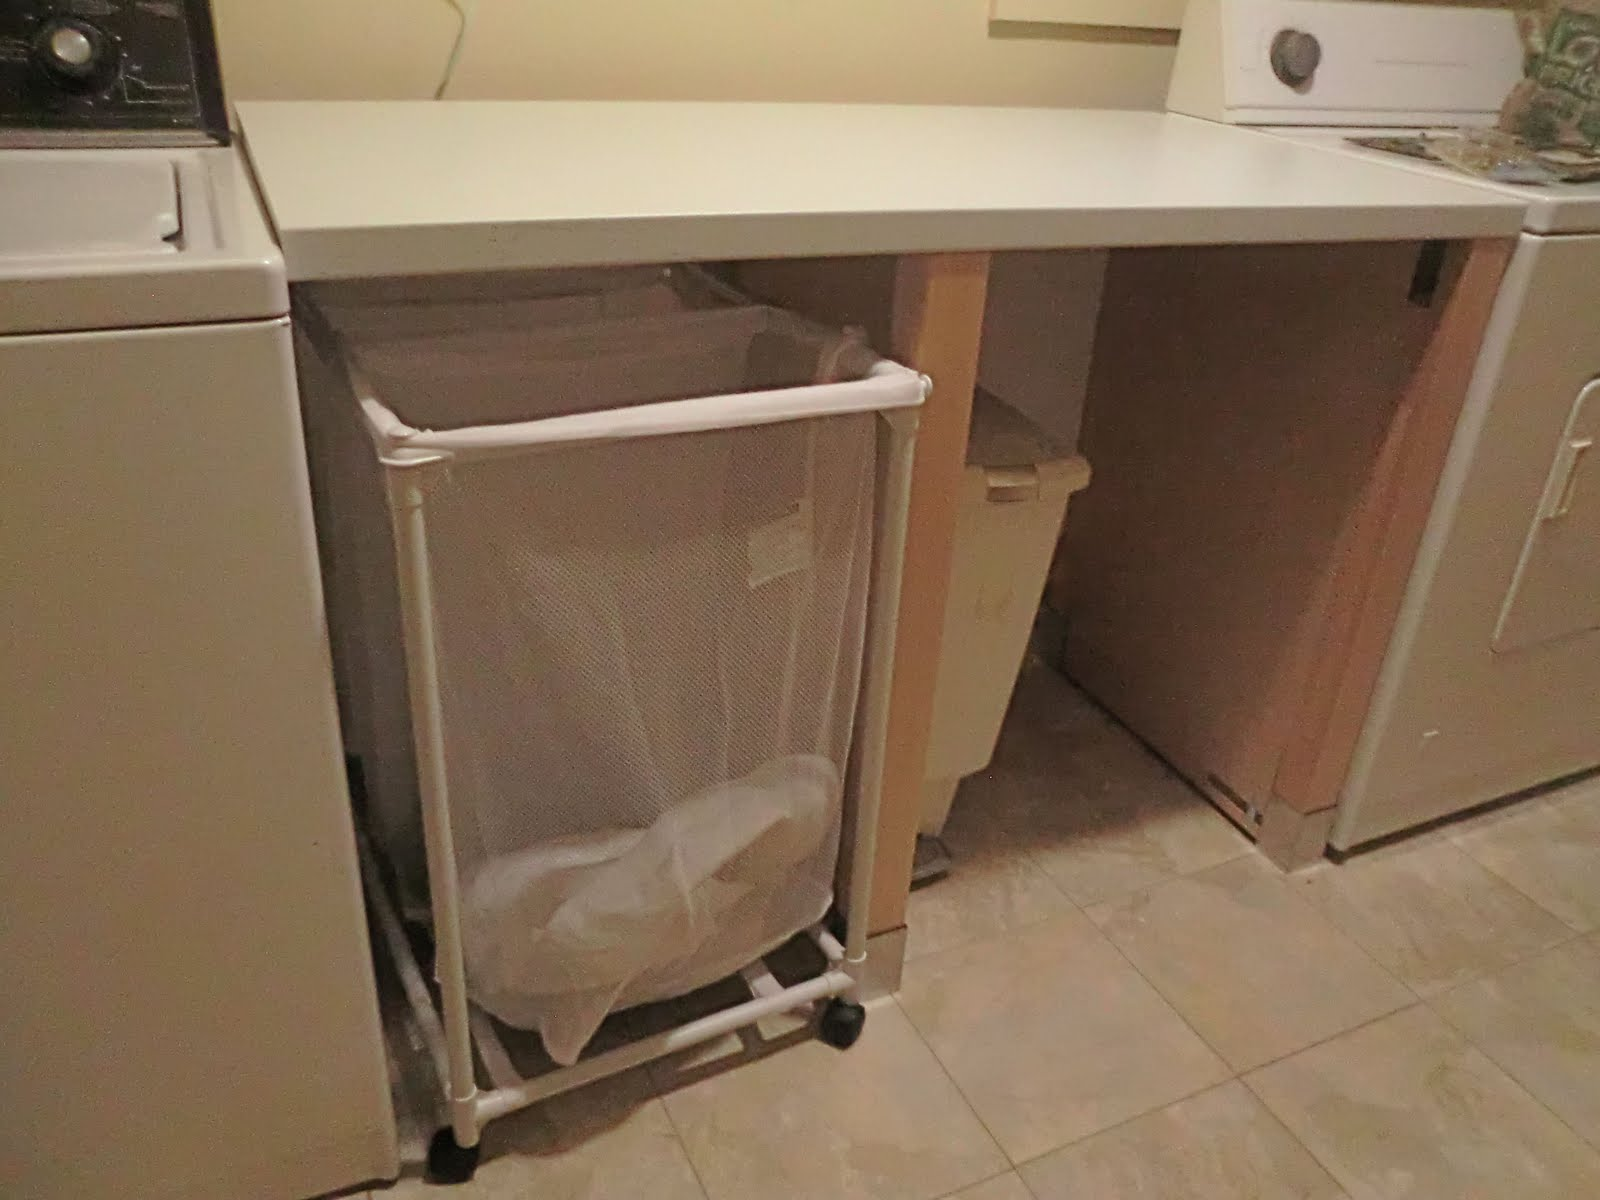 Laundry folding station out of a dishwasher cabinet - IKEA Hackers ...